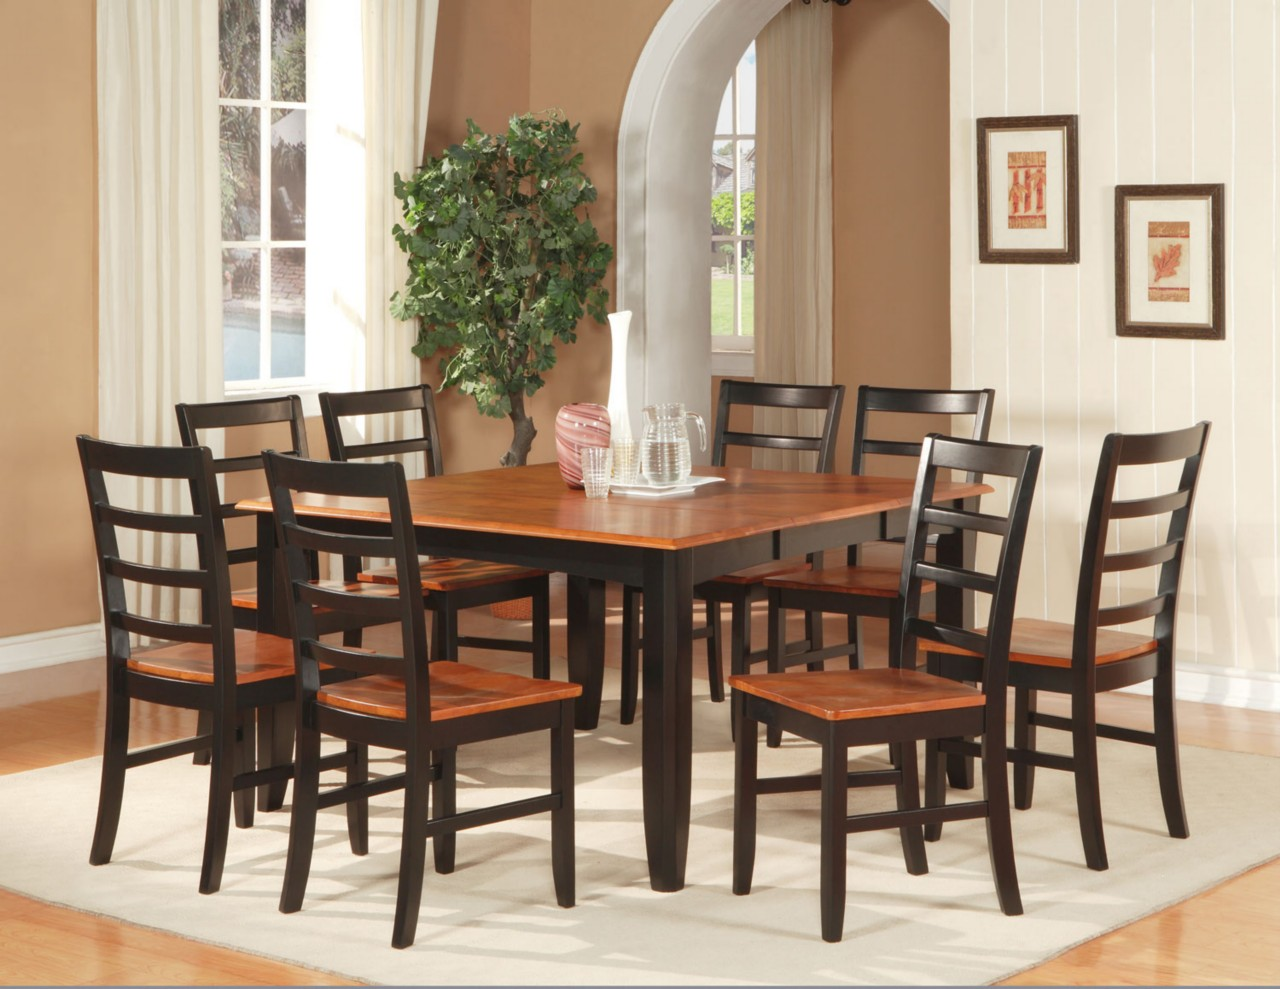 ... dinettestyle Store For Many More Dining Dinette Kitchen Table & Chairs